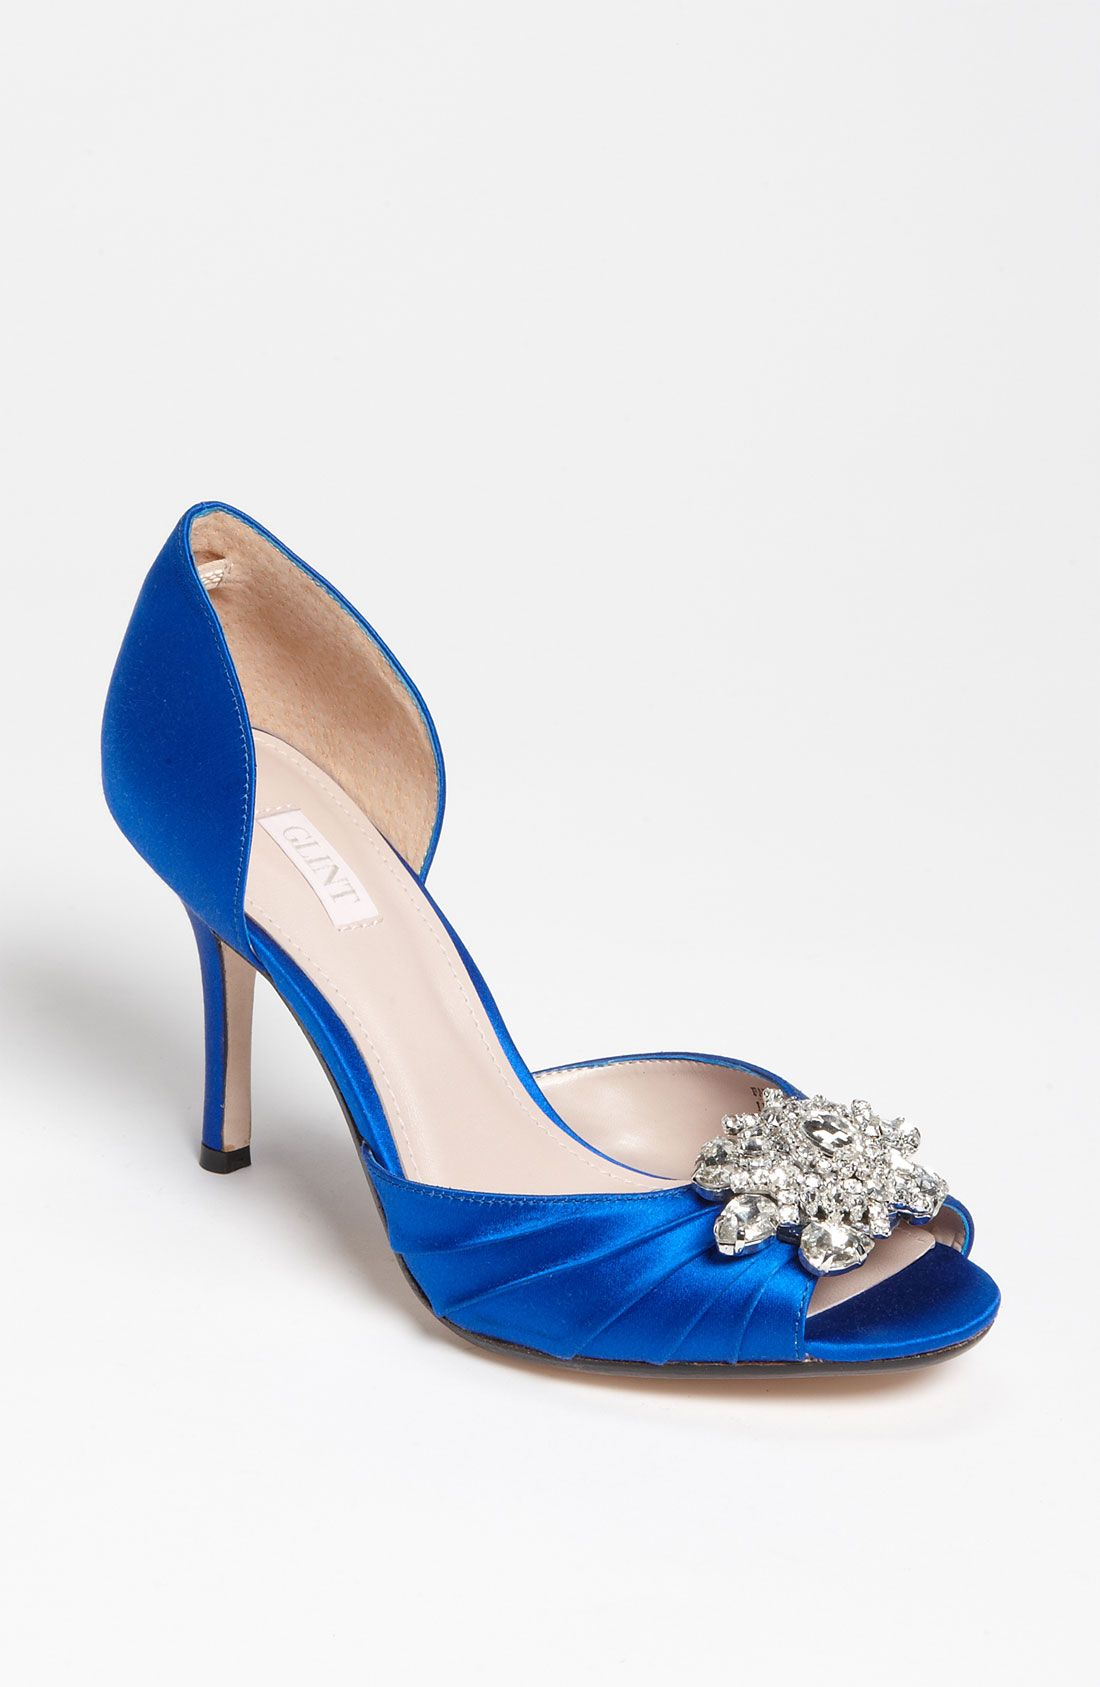 Blue shoe with silver accent also comes in white found these at